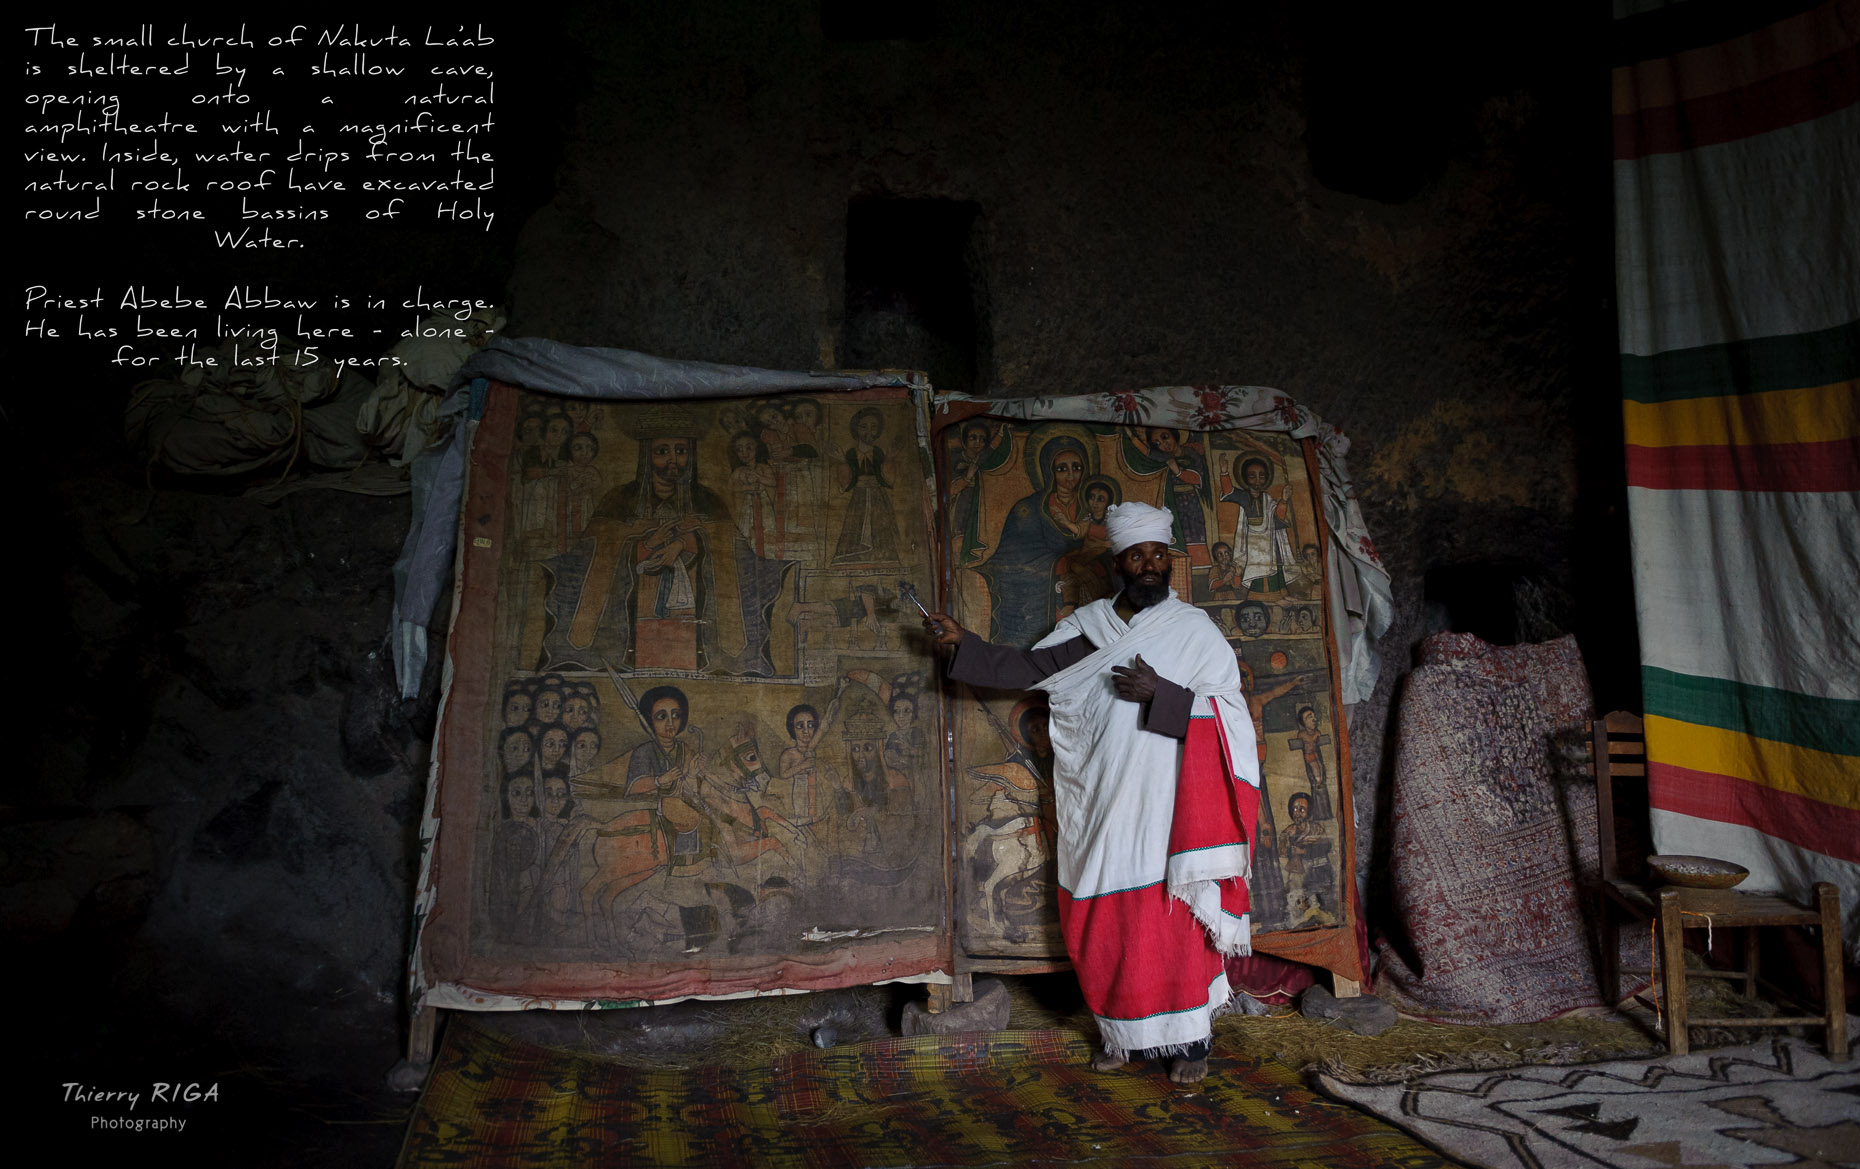 Lalibela priest cross ethiopia Nakute Laab church